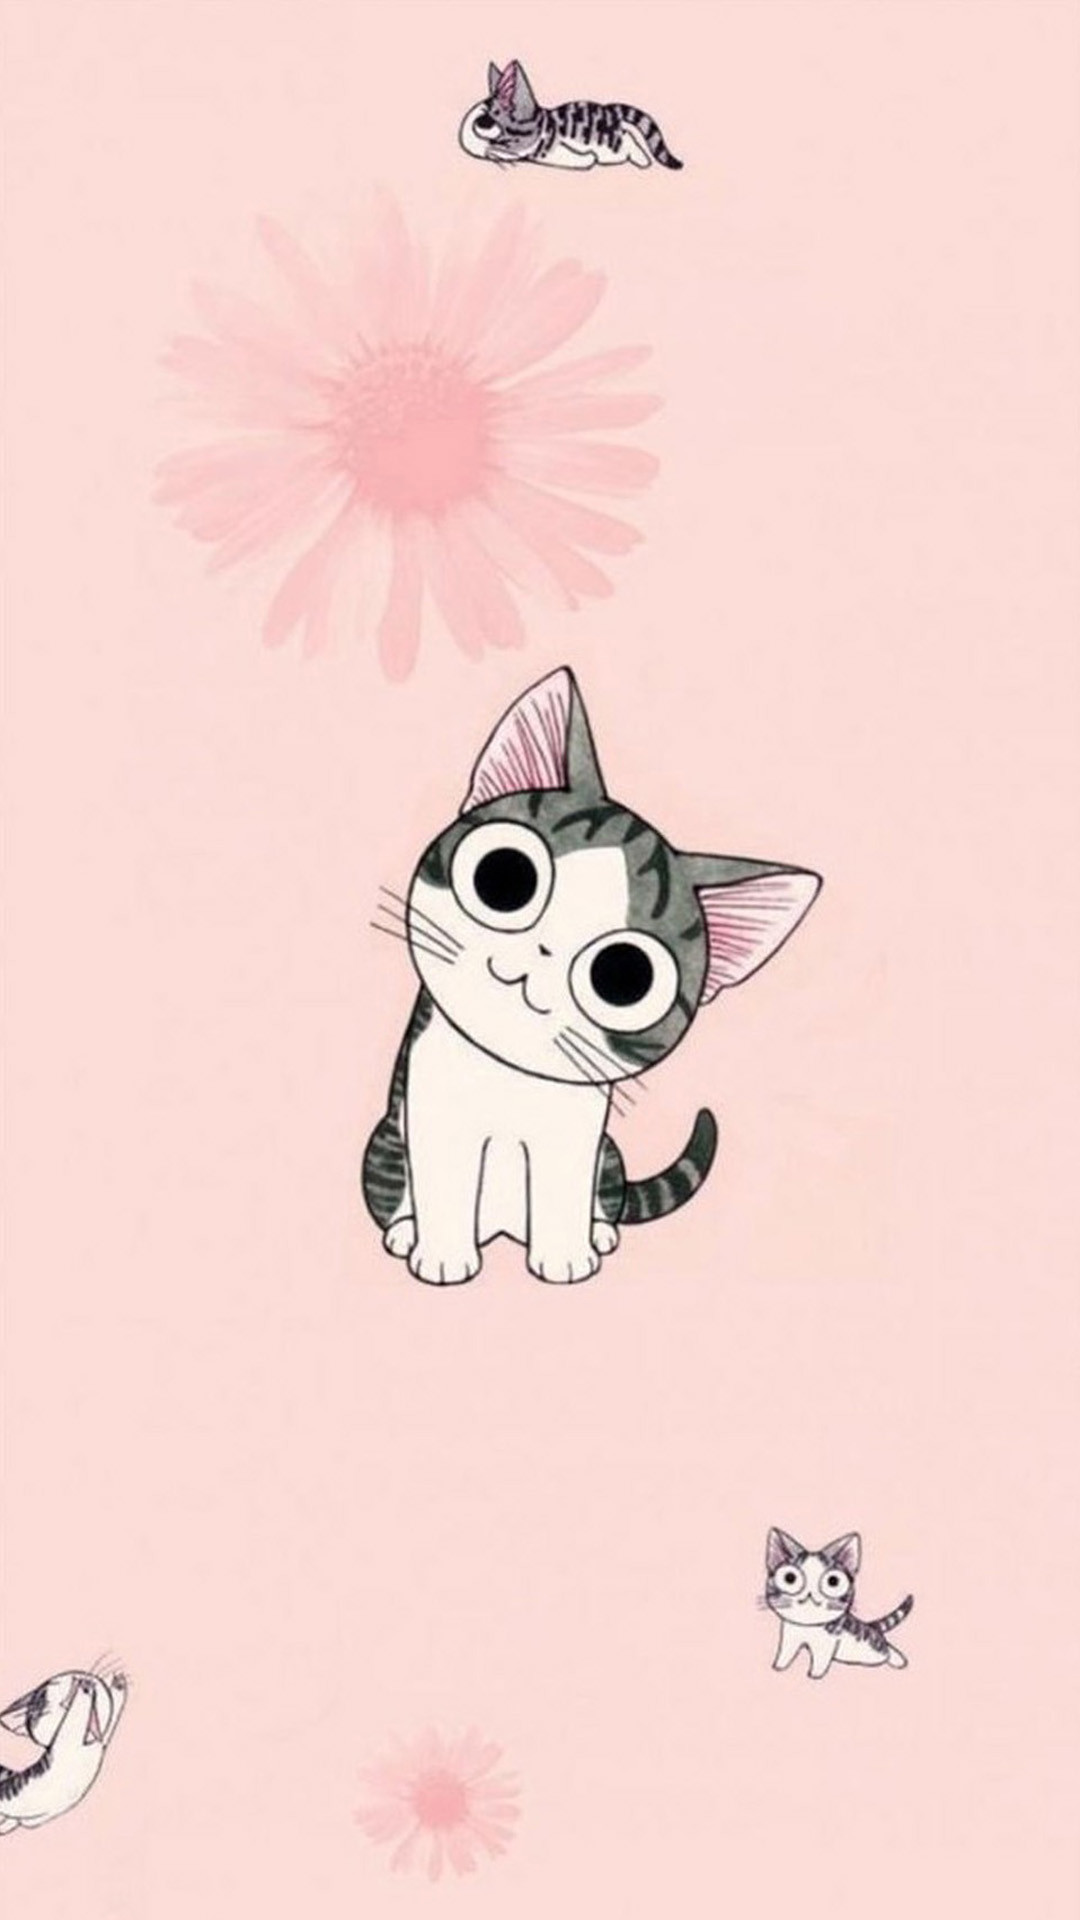 Cute Wallpapers For IPhone 6 Plus 130